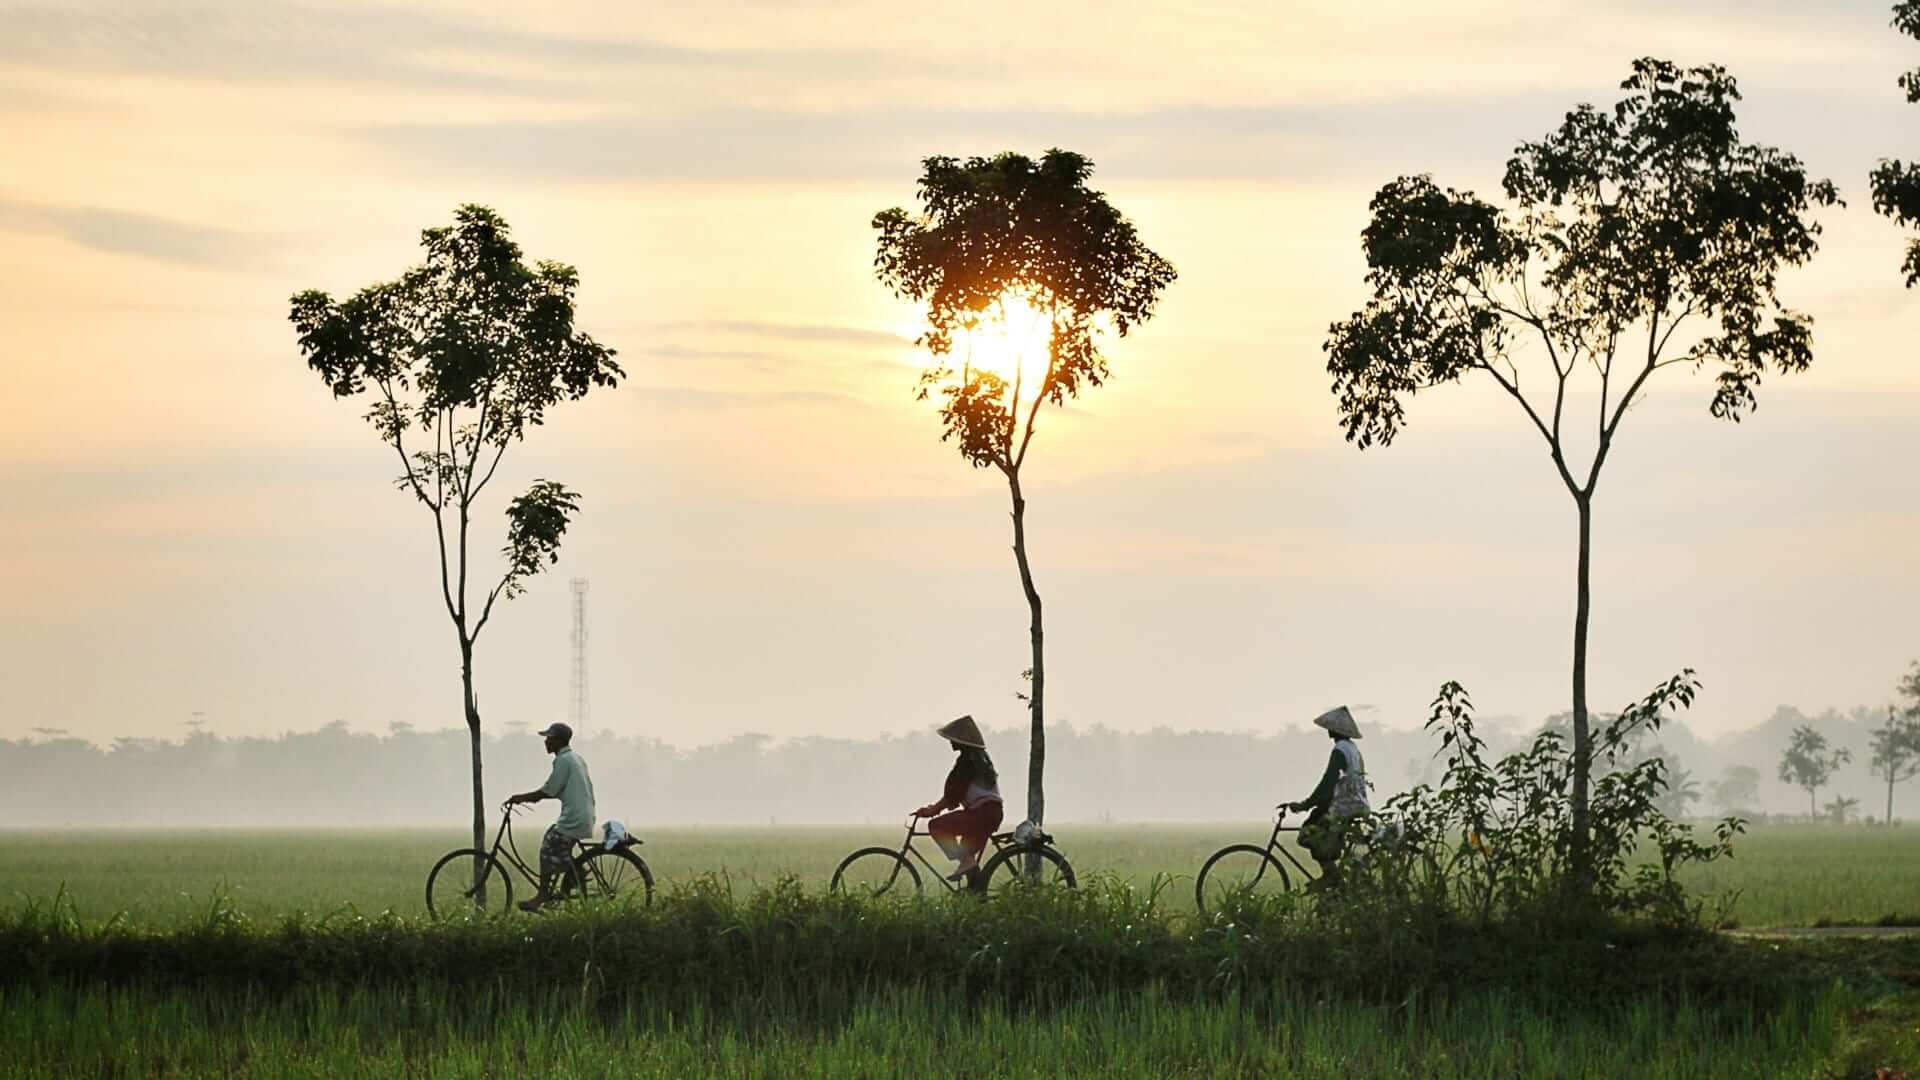 Three people with hats are cycling on a path with high trees between green ricefields during sunrise in Indonesia.